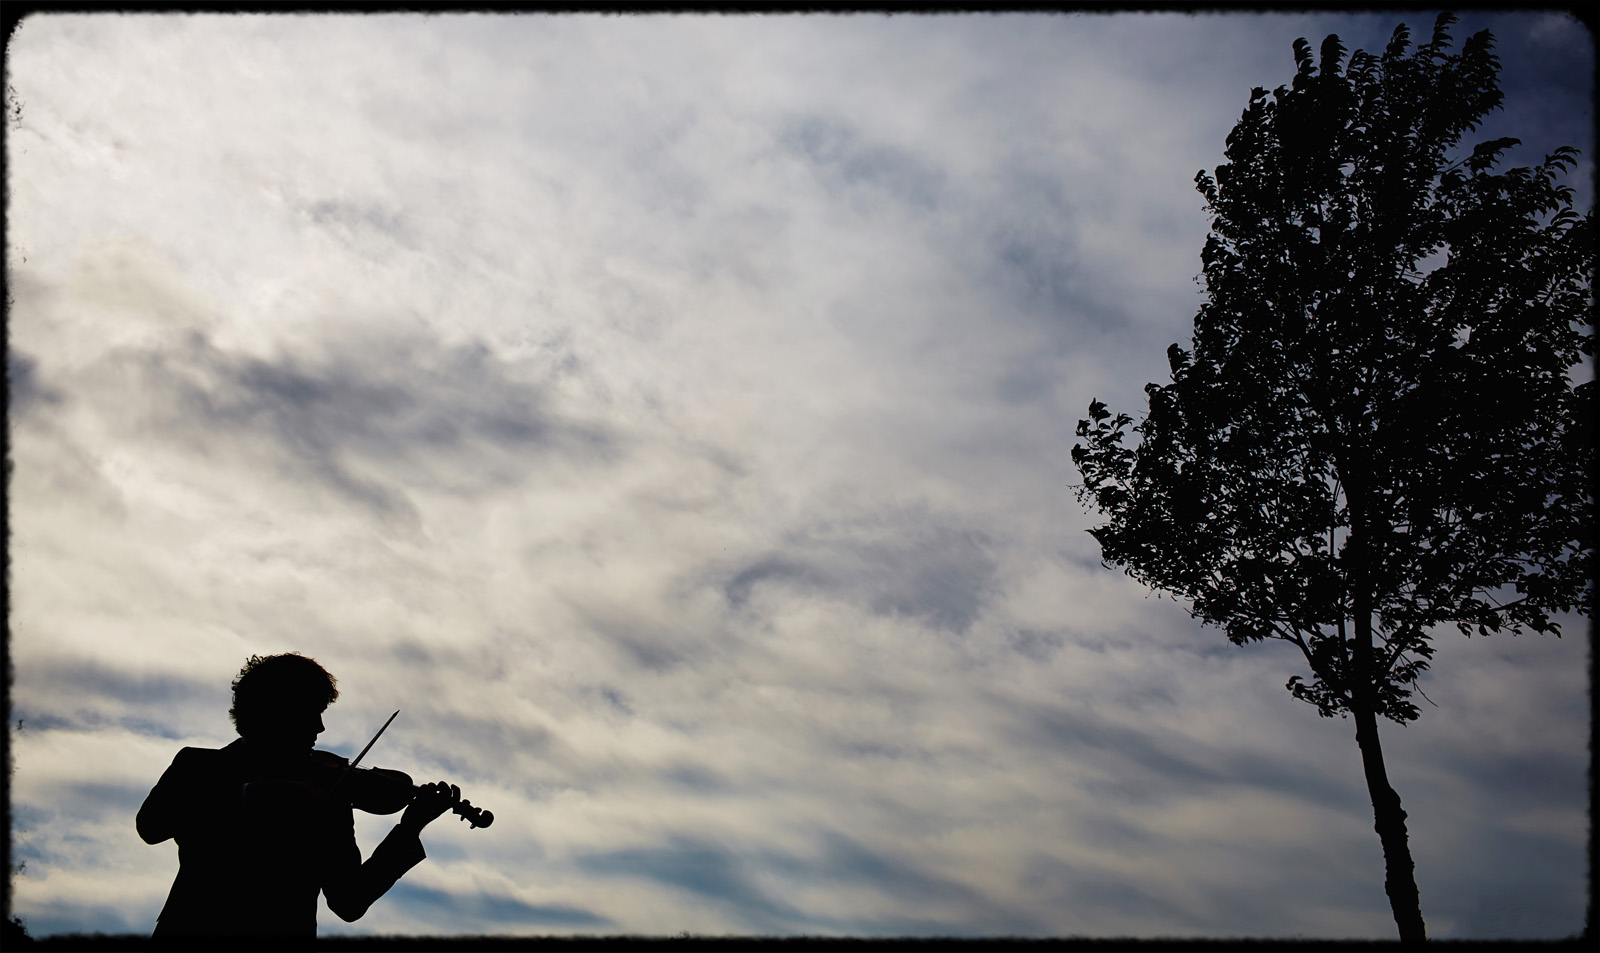 silouette of musician playing violin at wedding